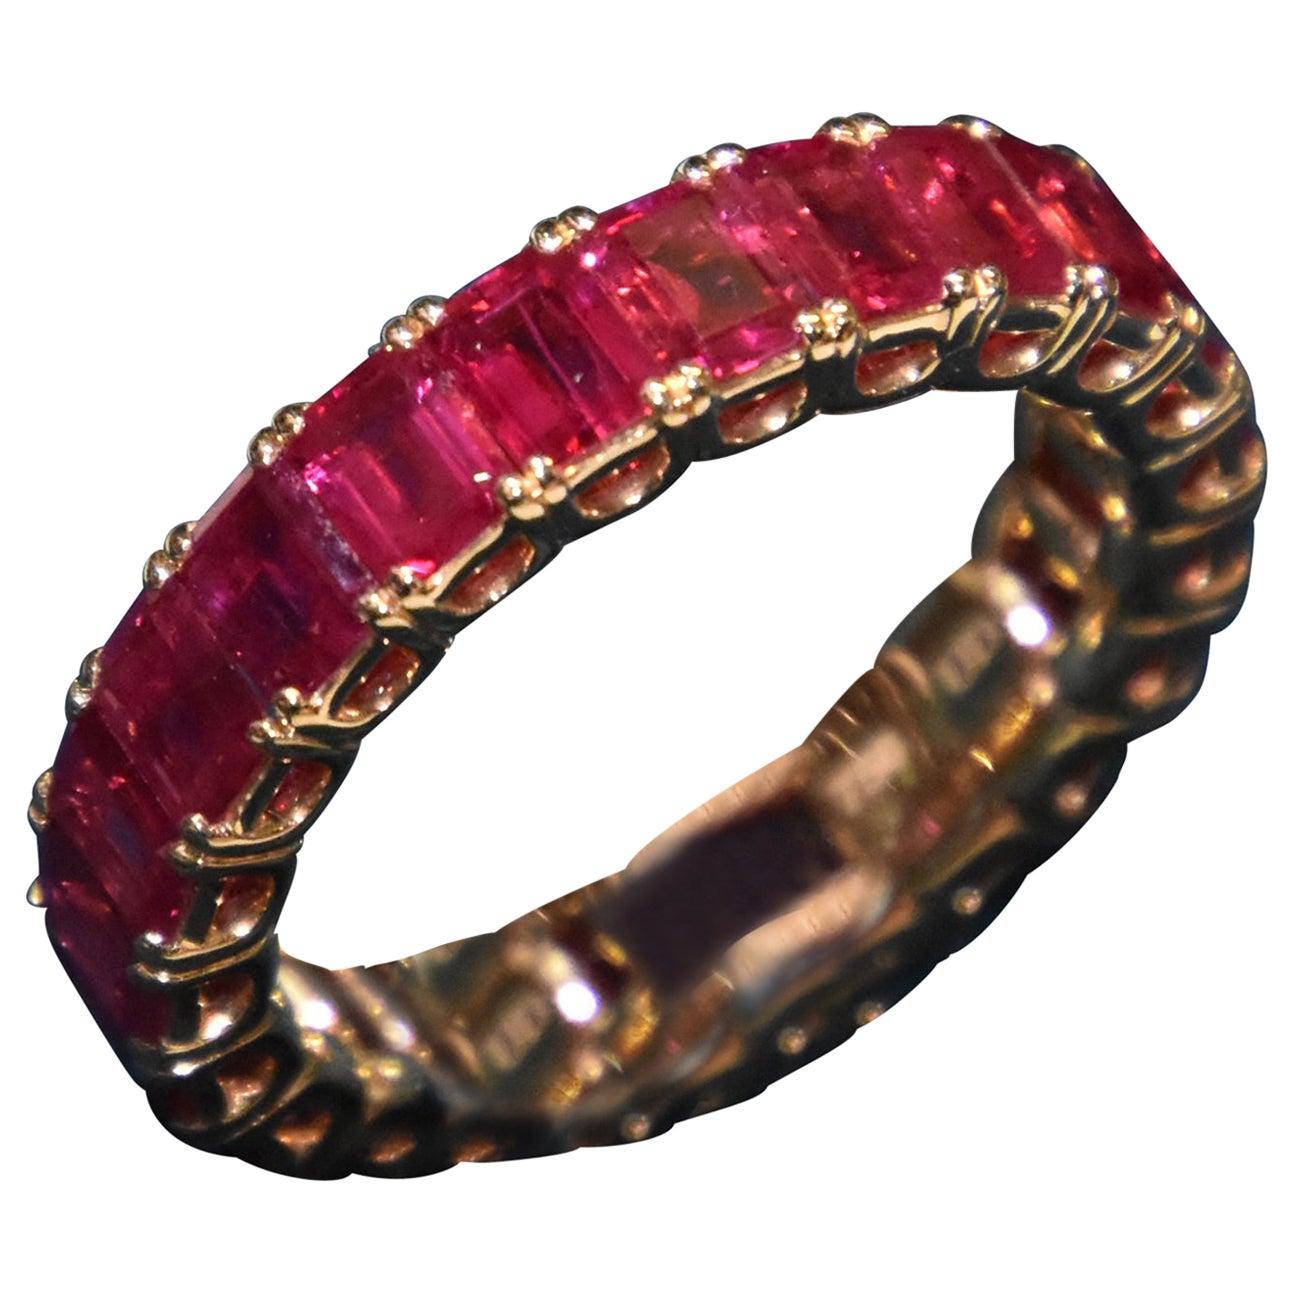 Eternity Ruby Ring in Rose or Red Gold